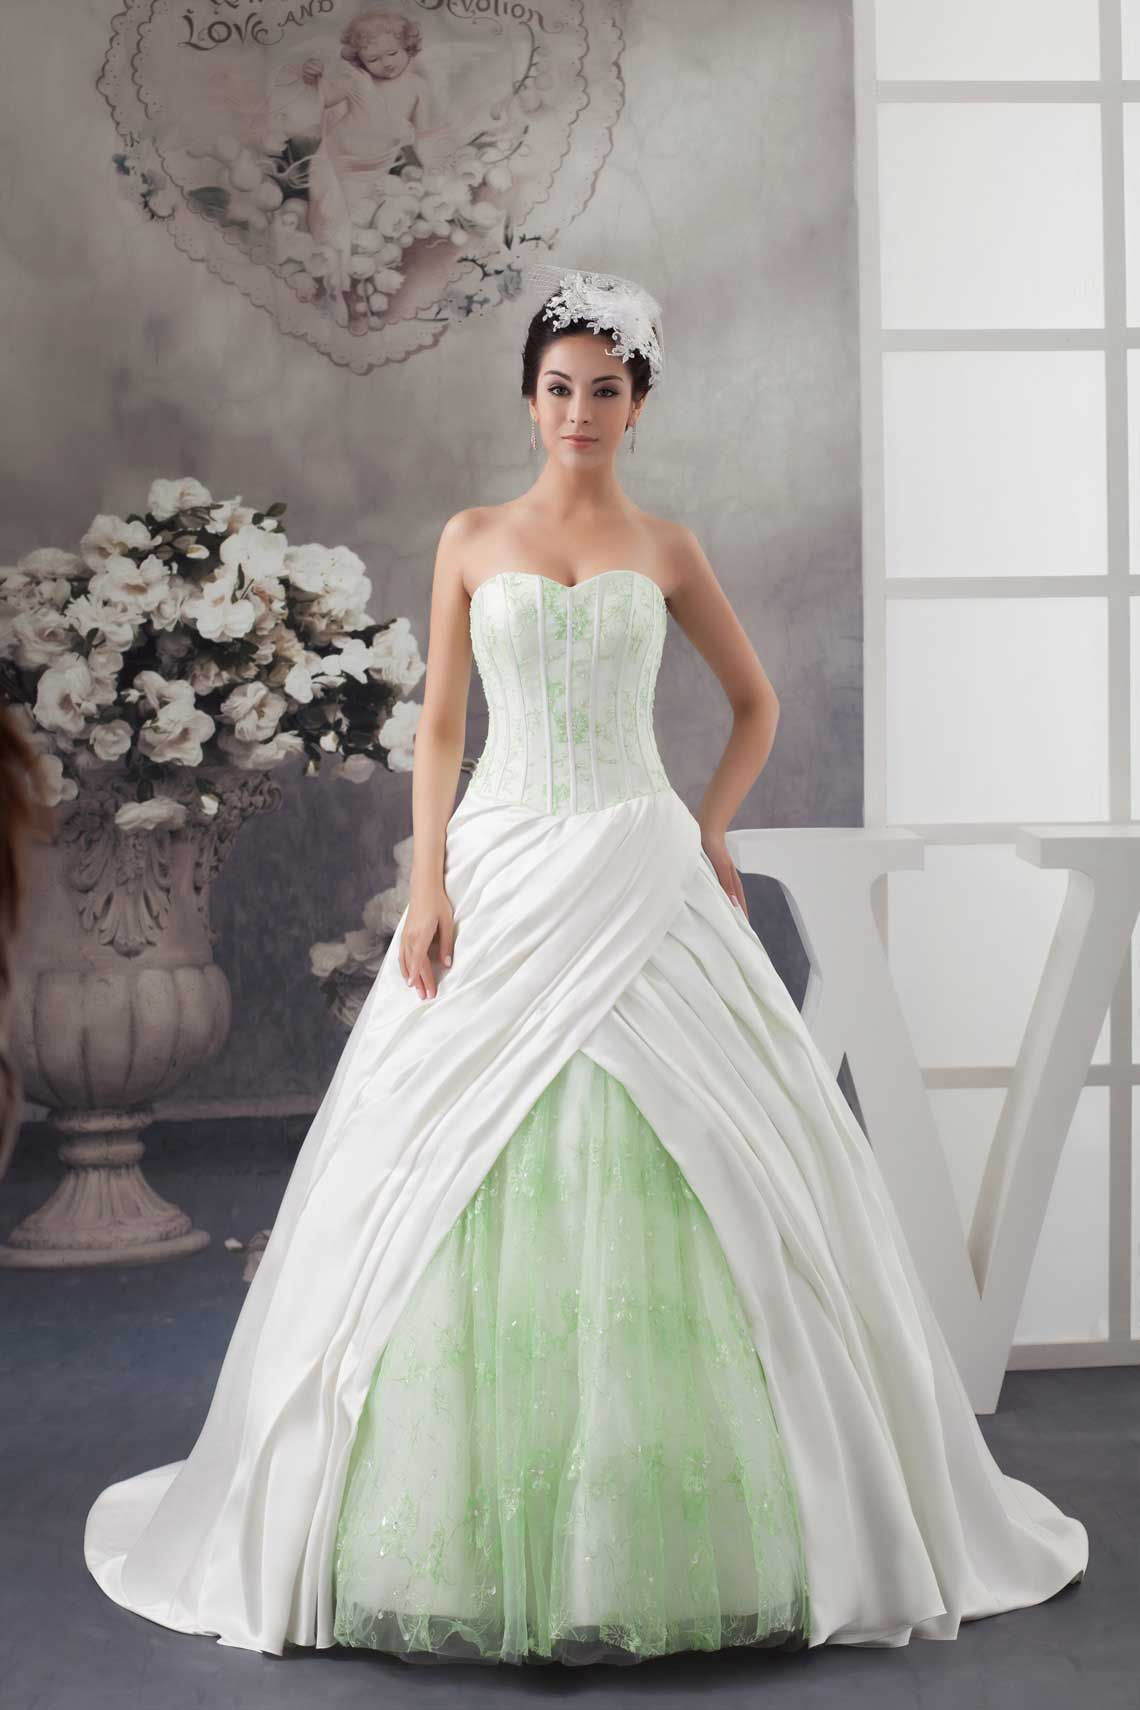 Fashion week White and green wedding dresses for girls